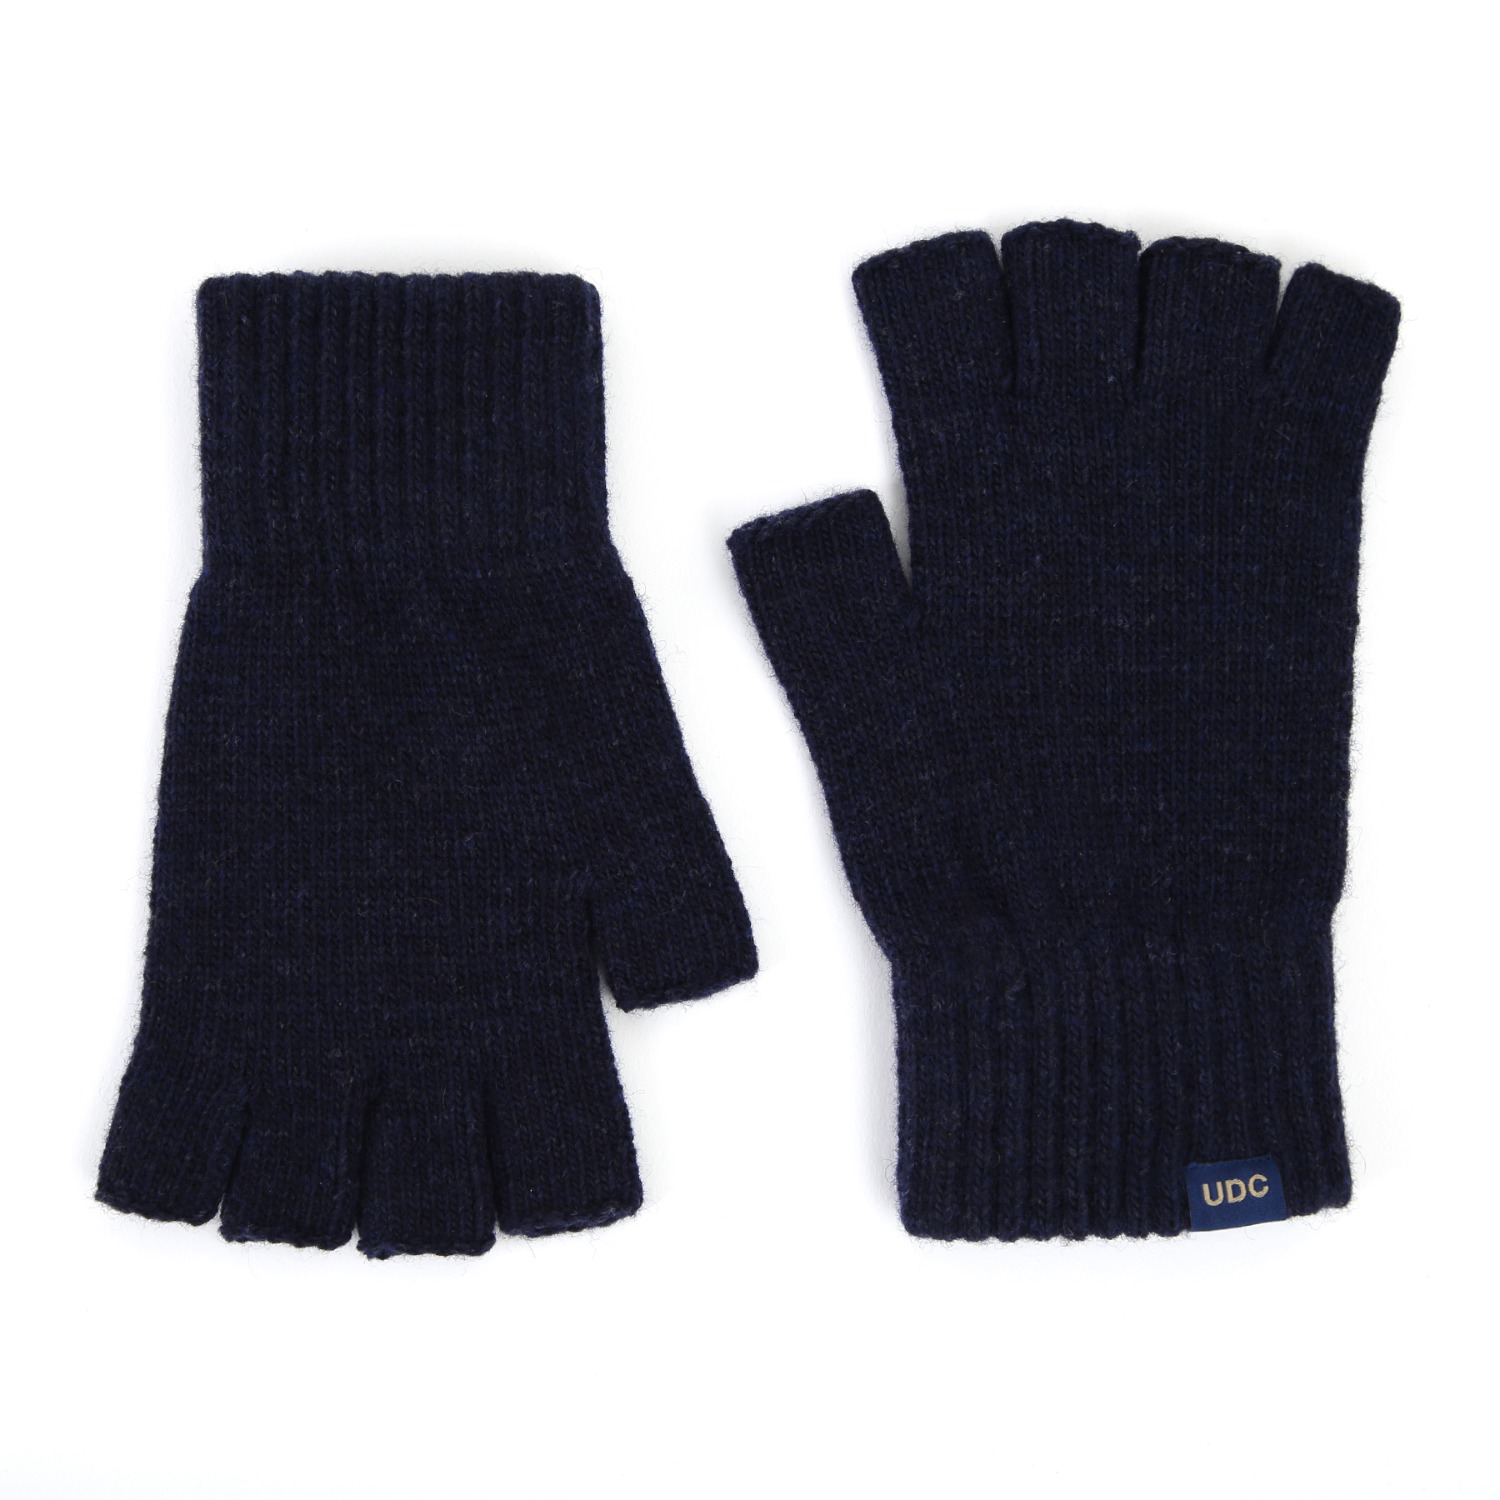 FINGERLESS / UDC / SMOG NAVY